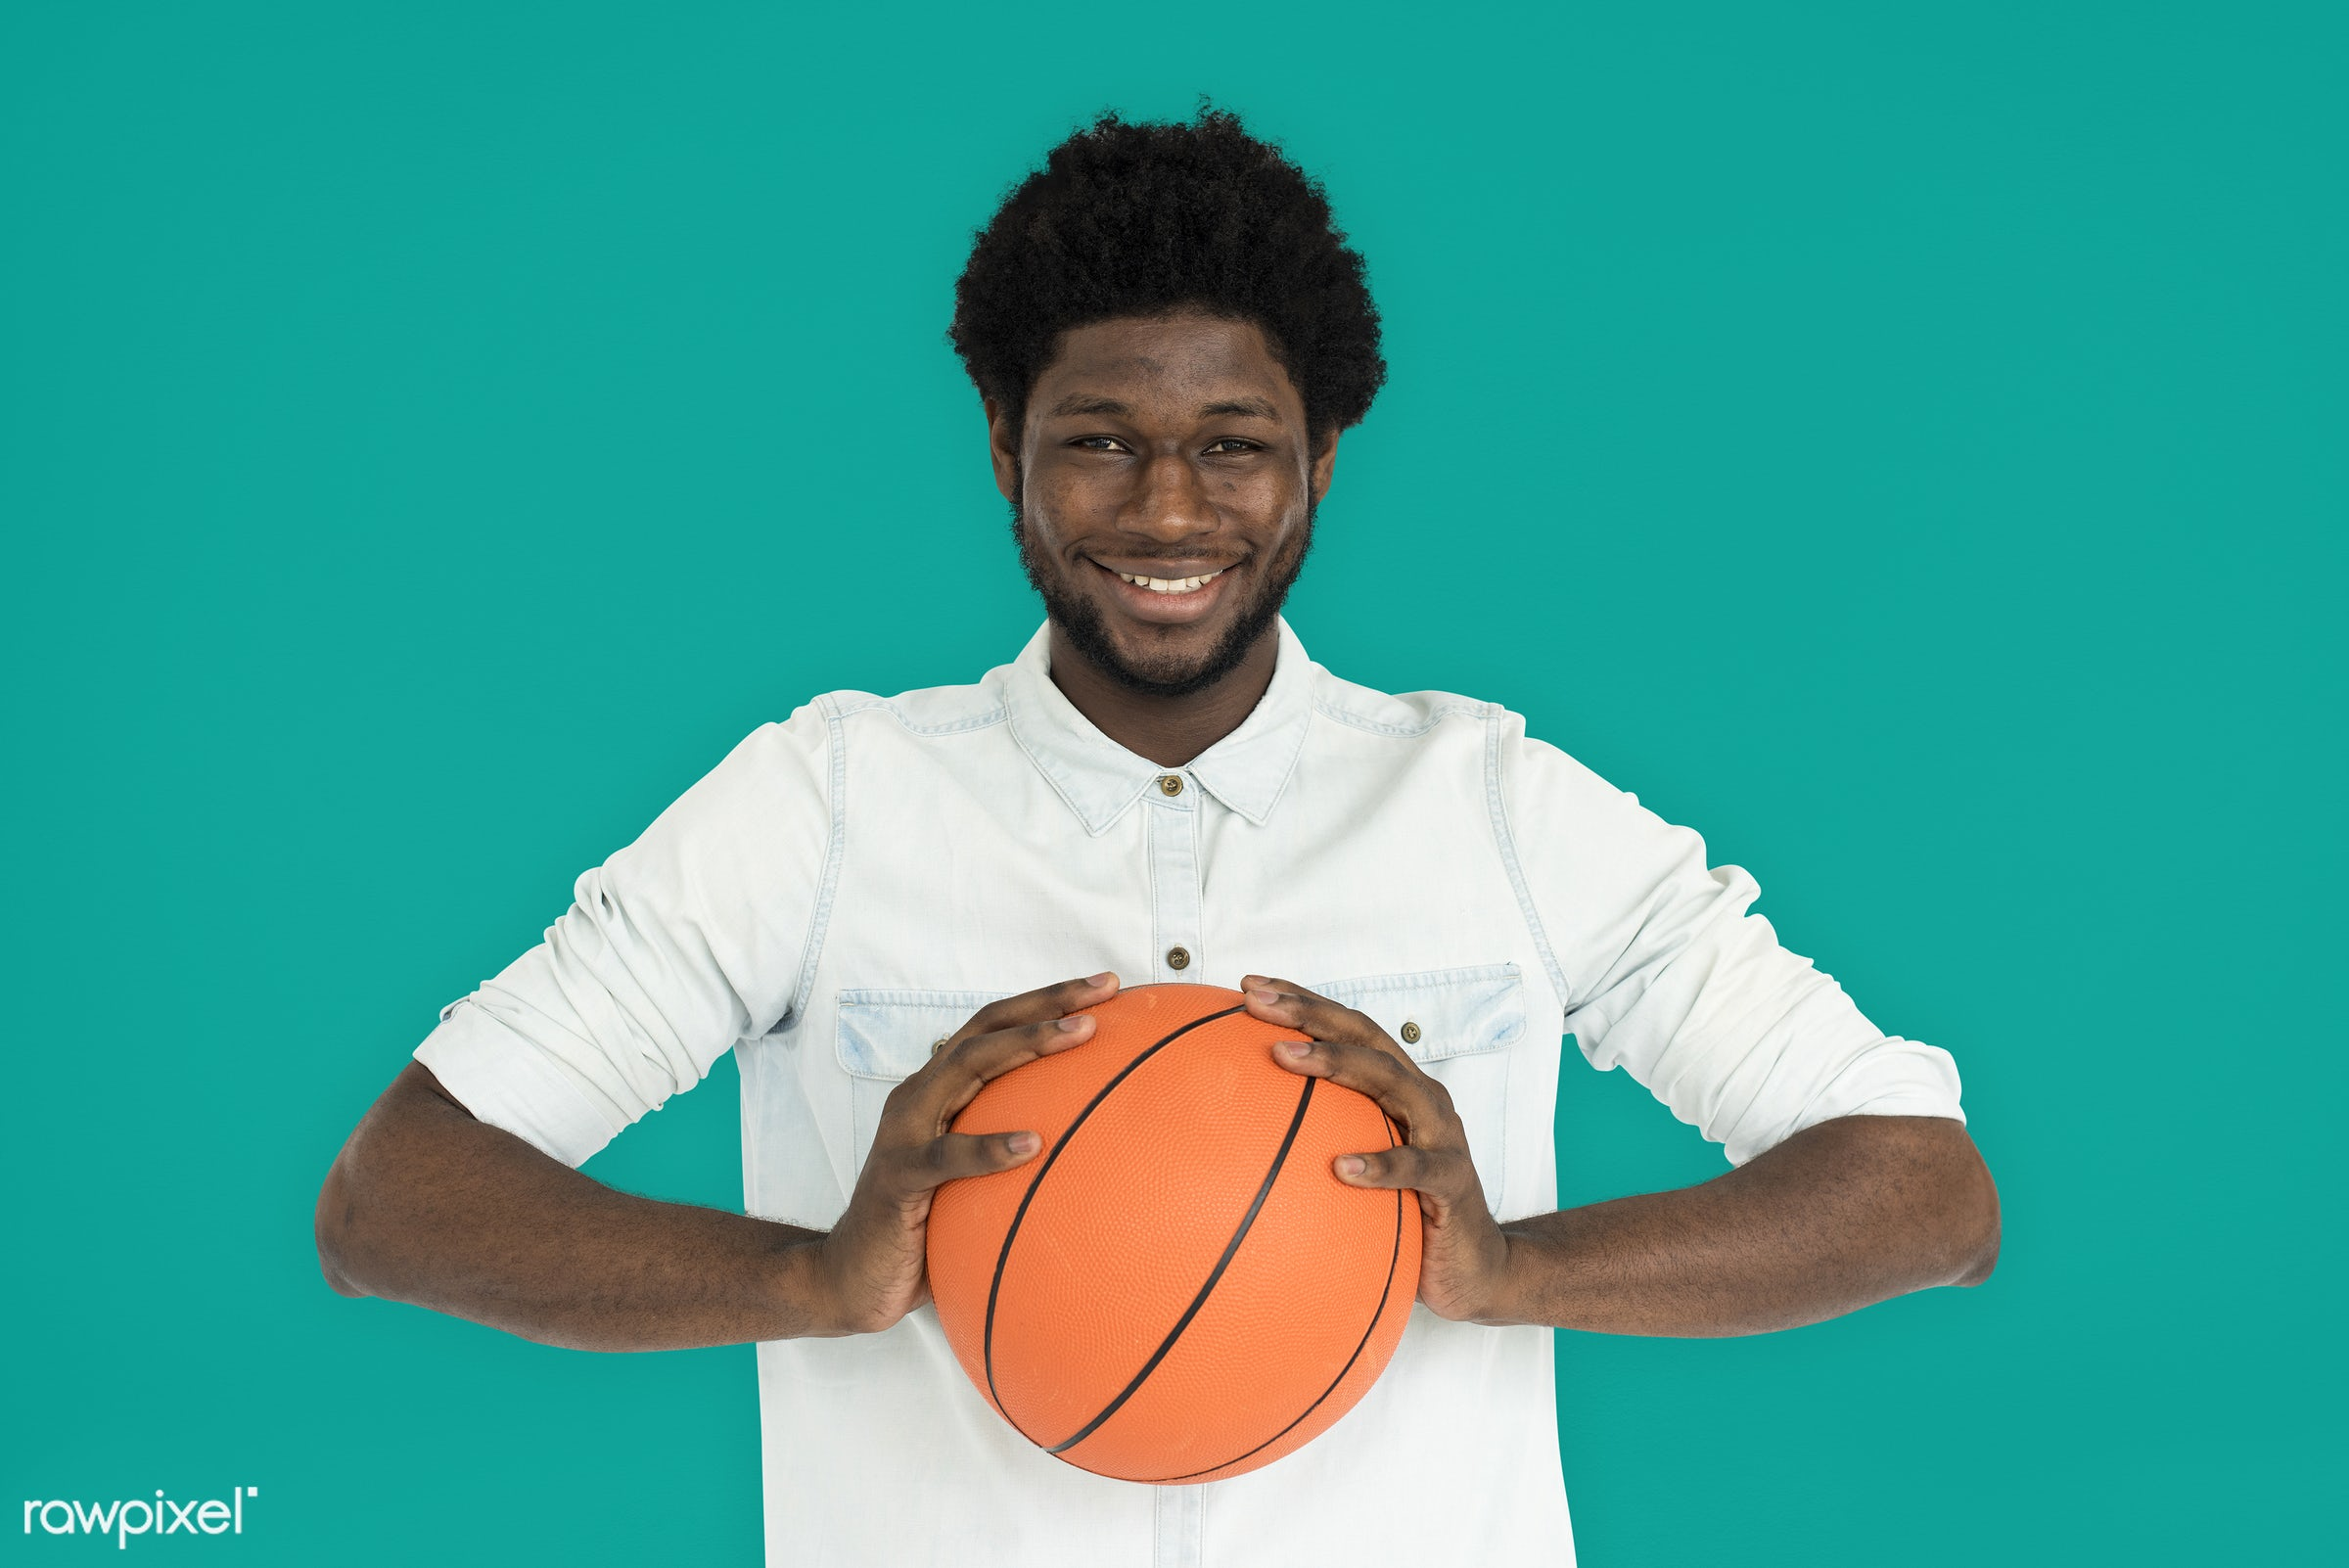 studio, basketball, expression, person, holding, people, lifestyle, cheerful, smiling, isolated, laugh, hobby, candid,...